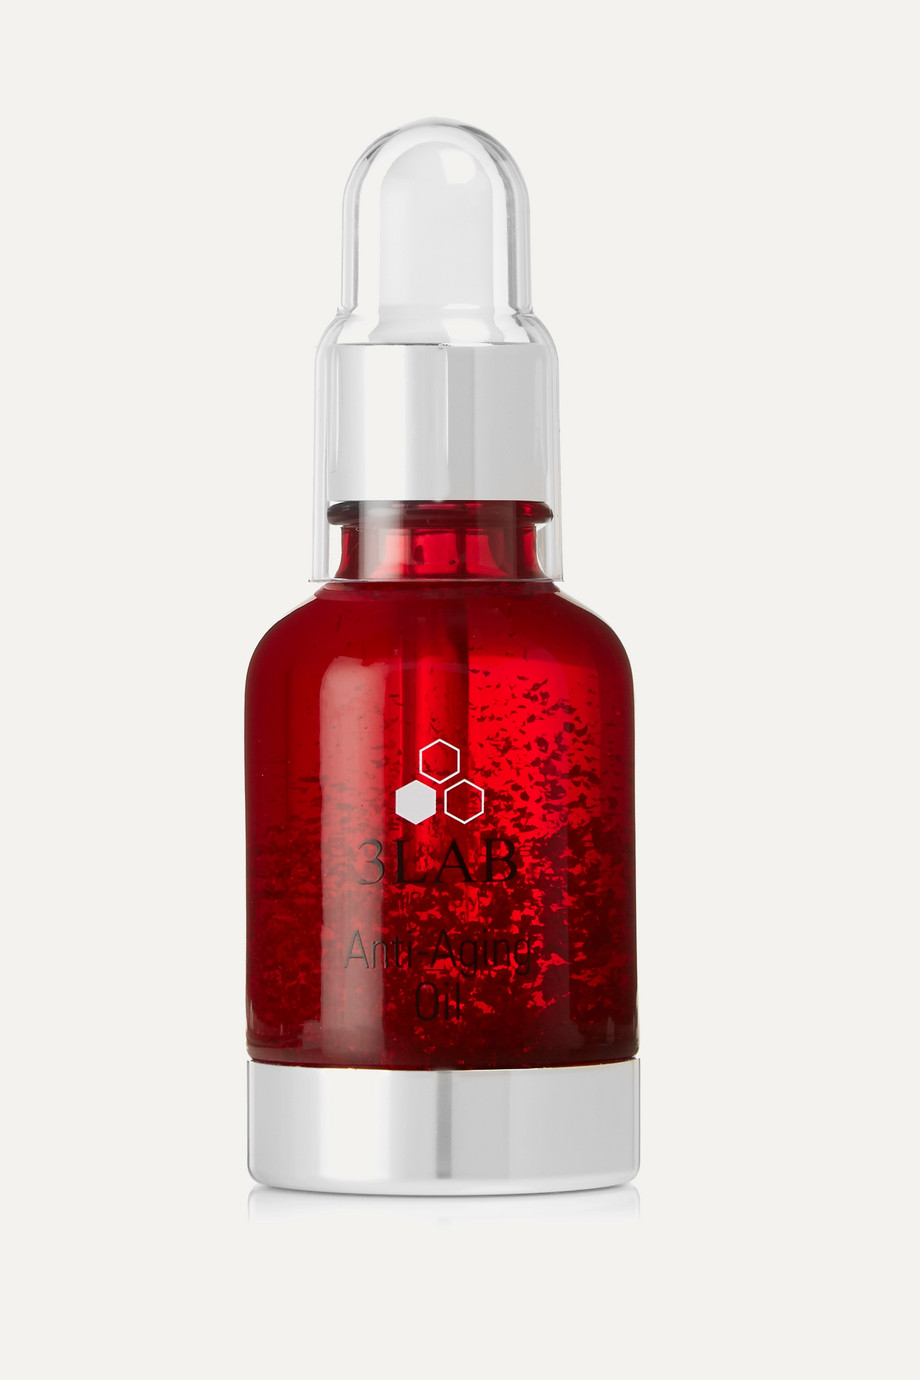 3LAB Anti-Aging Oil, 30ml